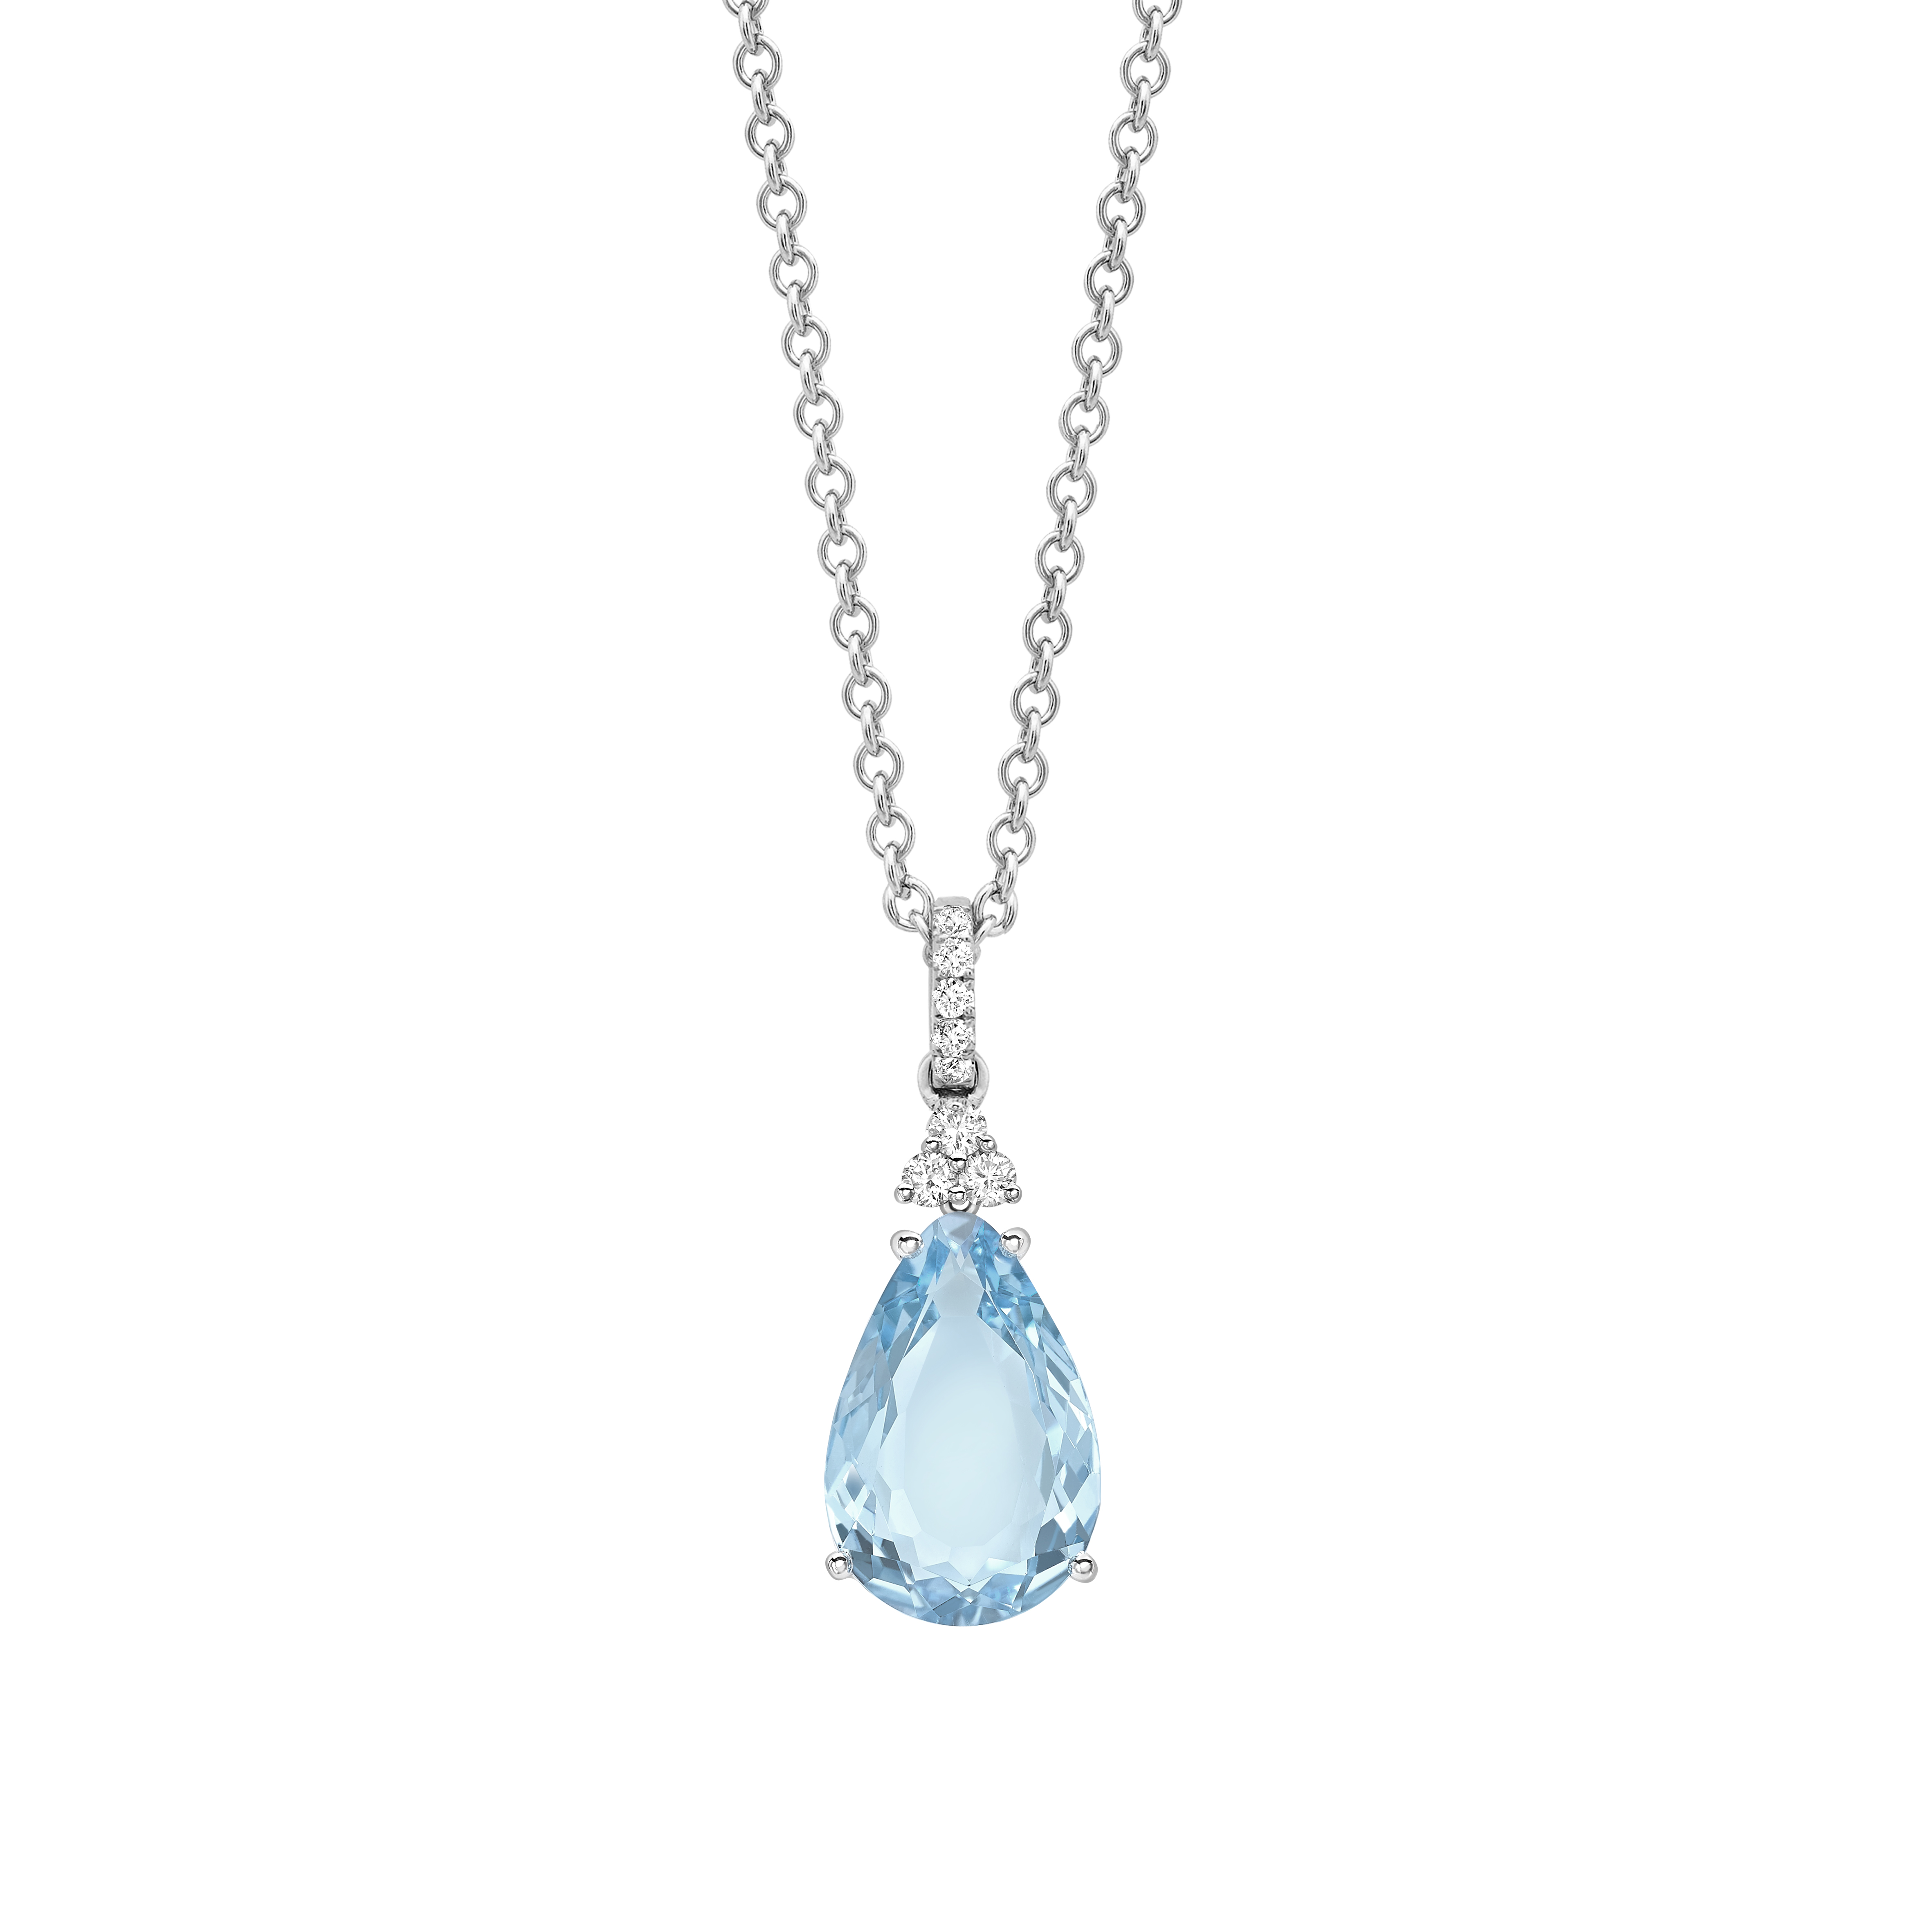 Kiki Blue Topaz Mini Candy Pendant